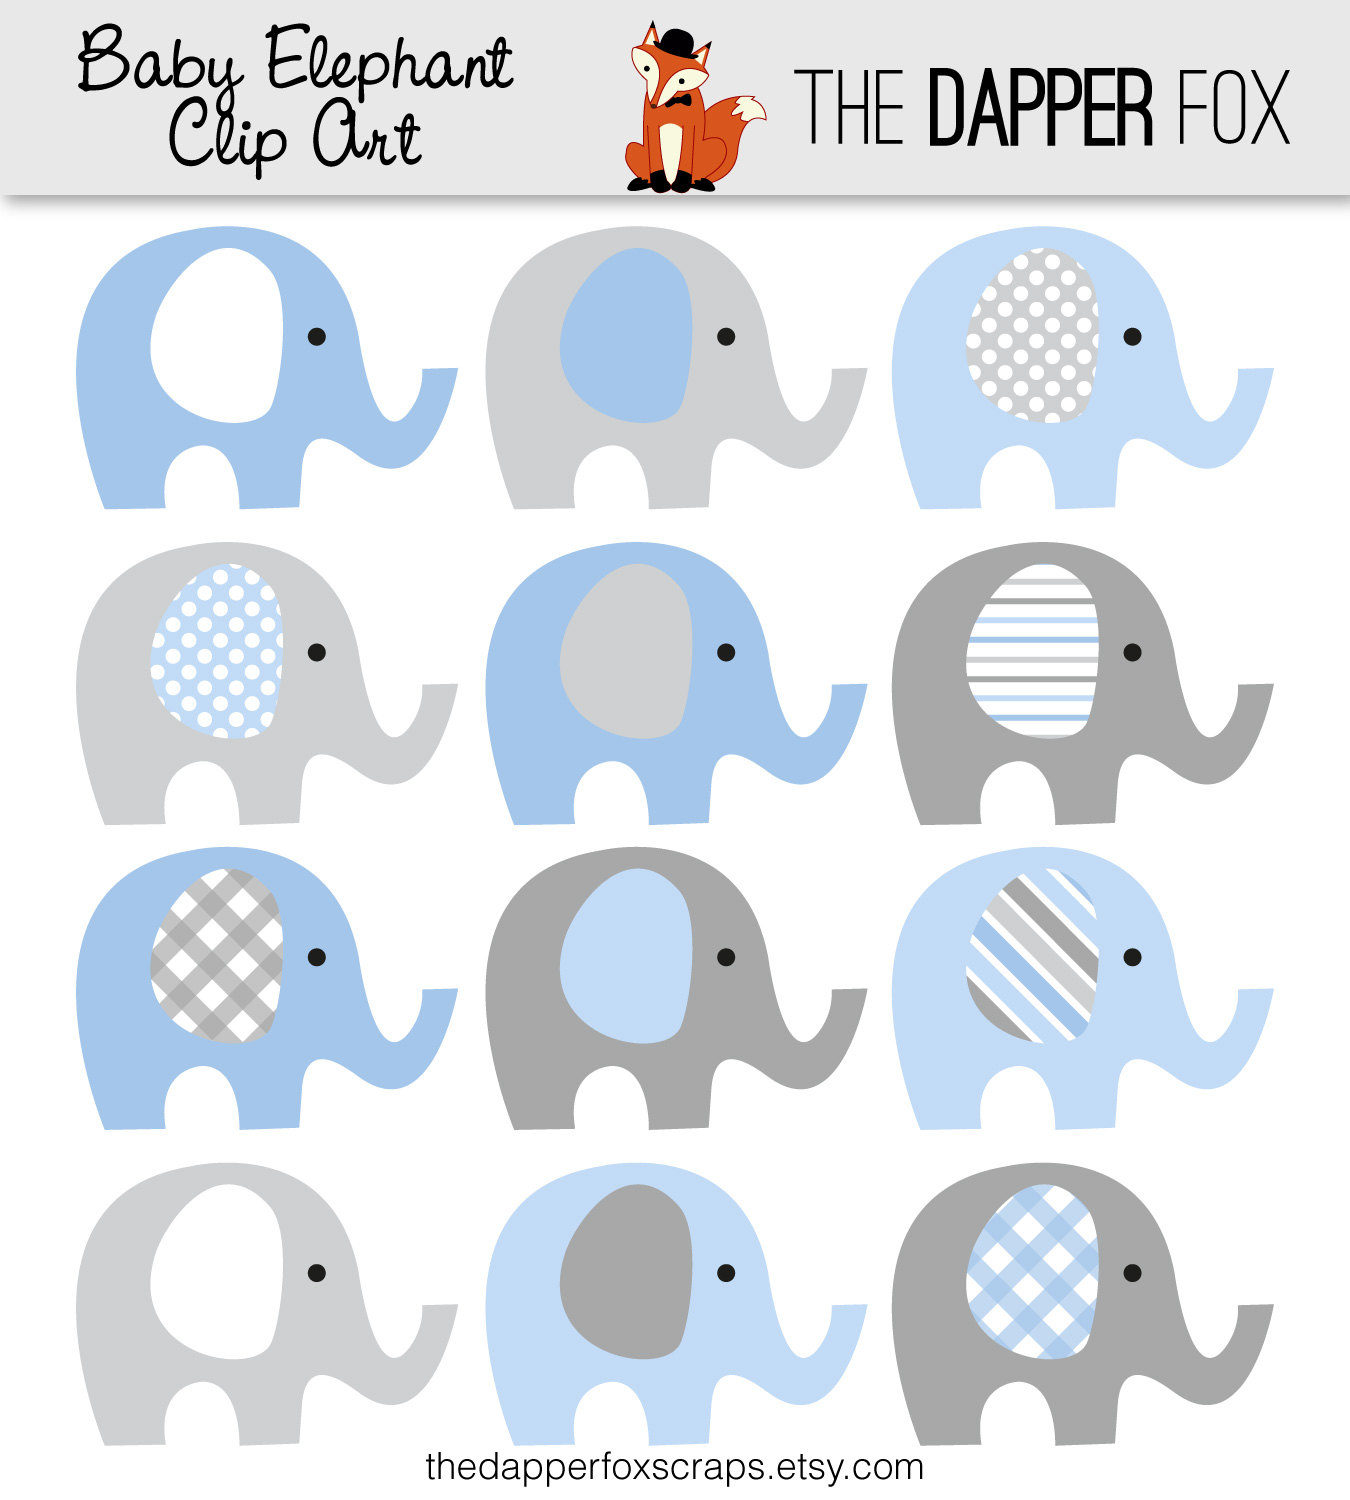 Elephant with baby elephant clipart vector download Blue baby elephant clipart - ClipartFest vector download